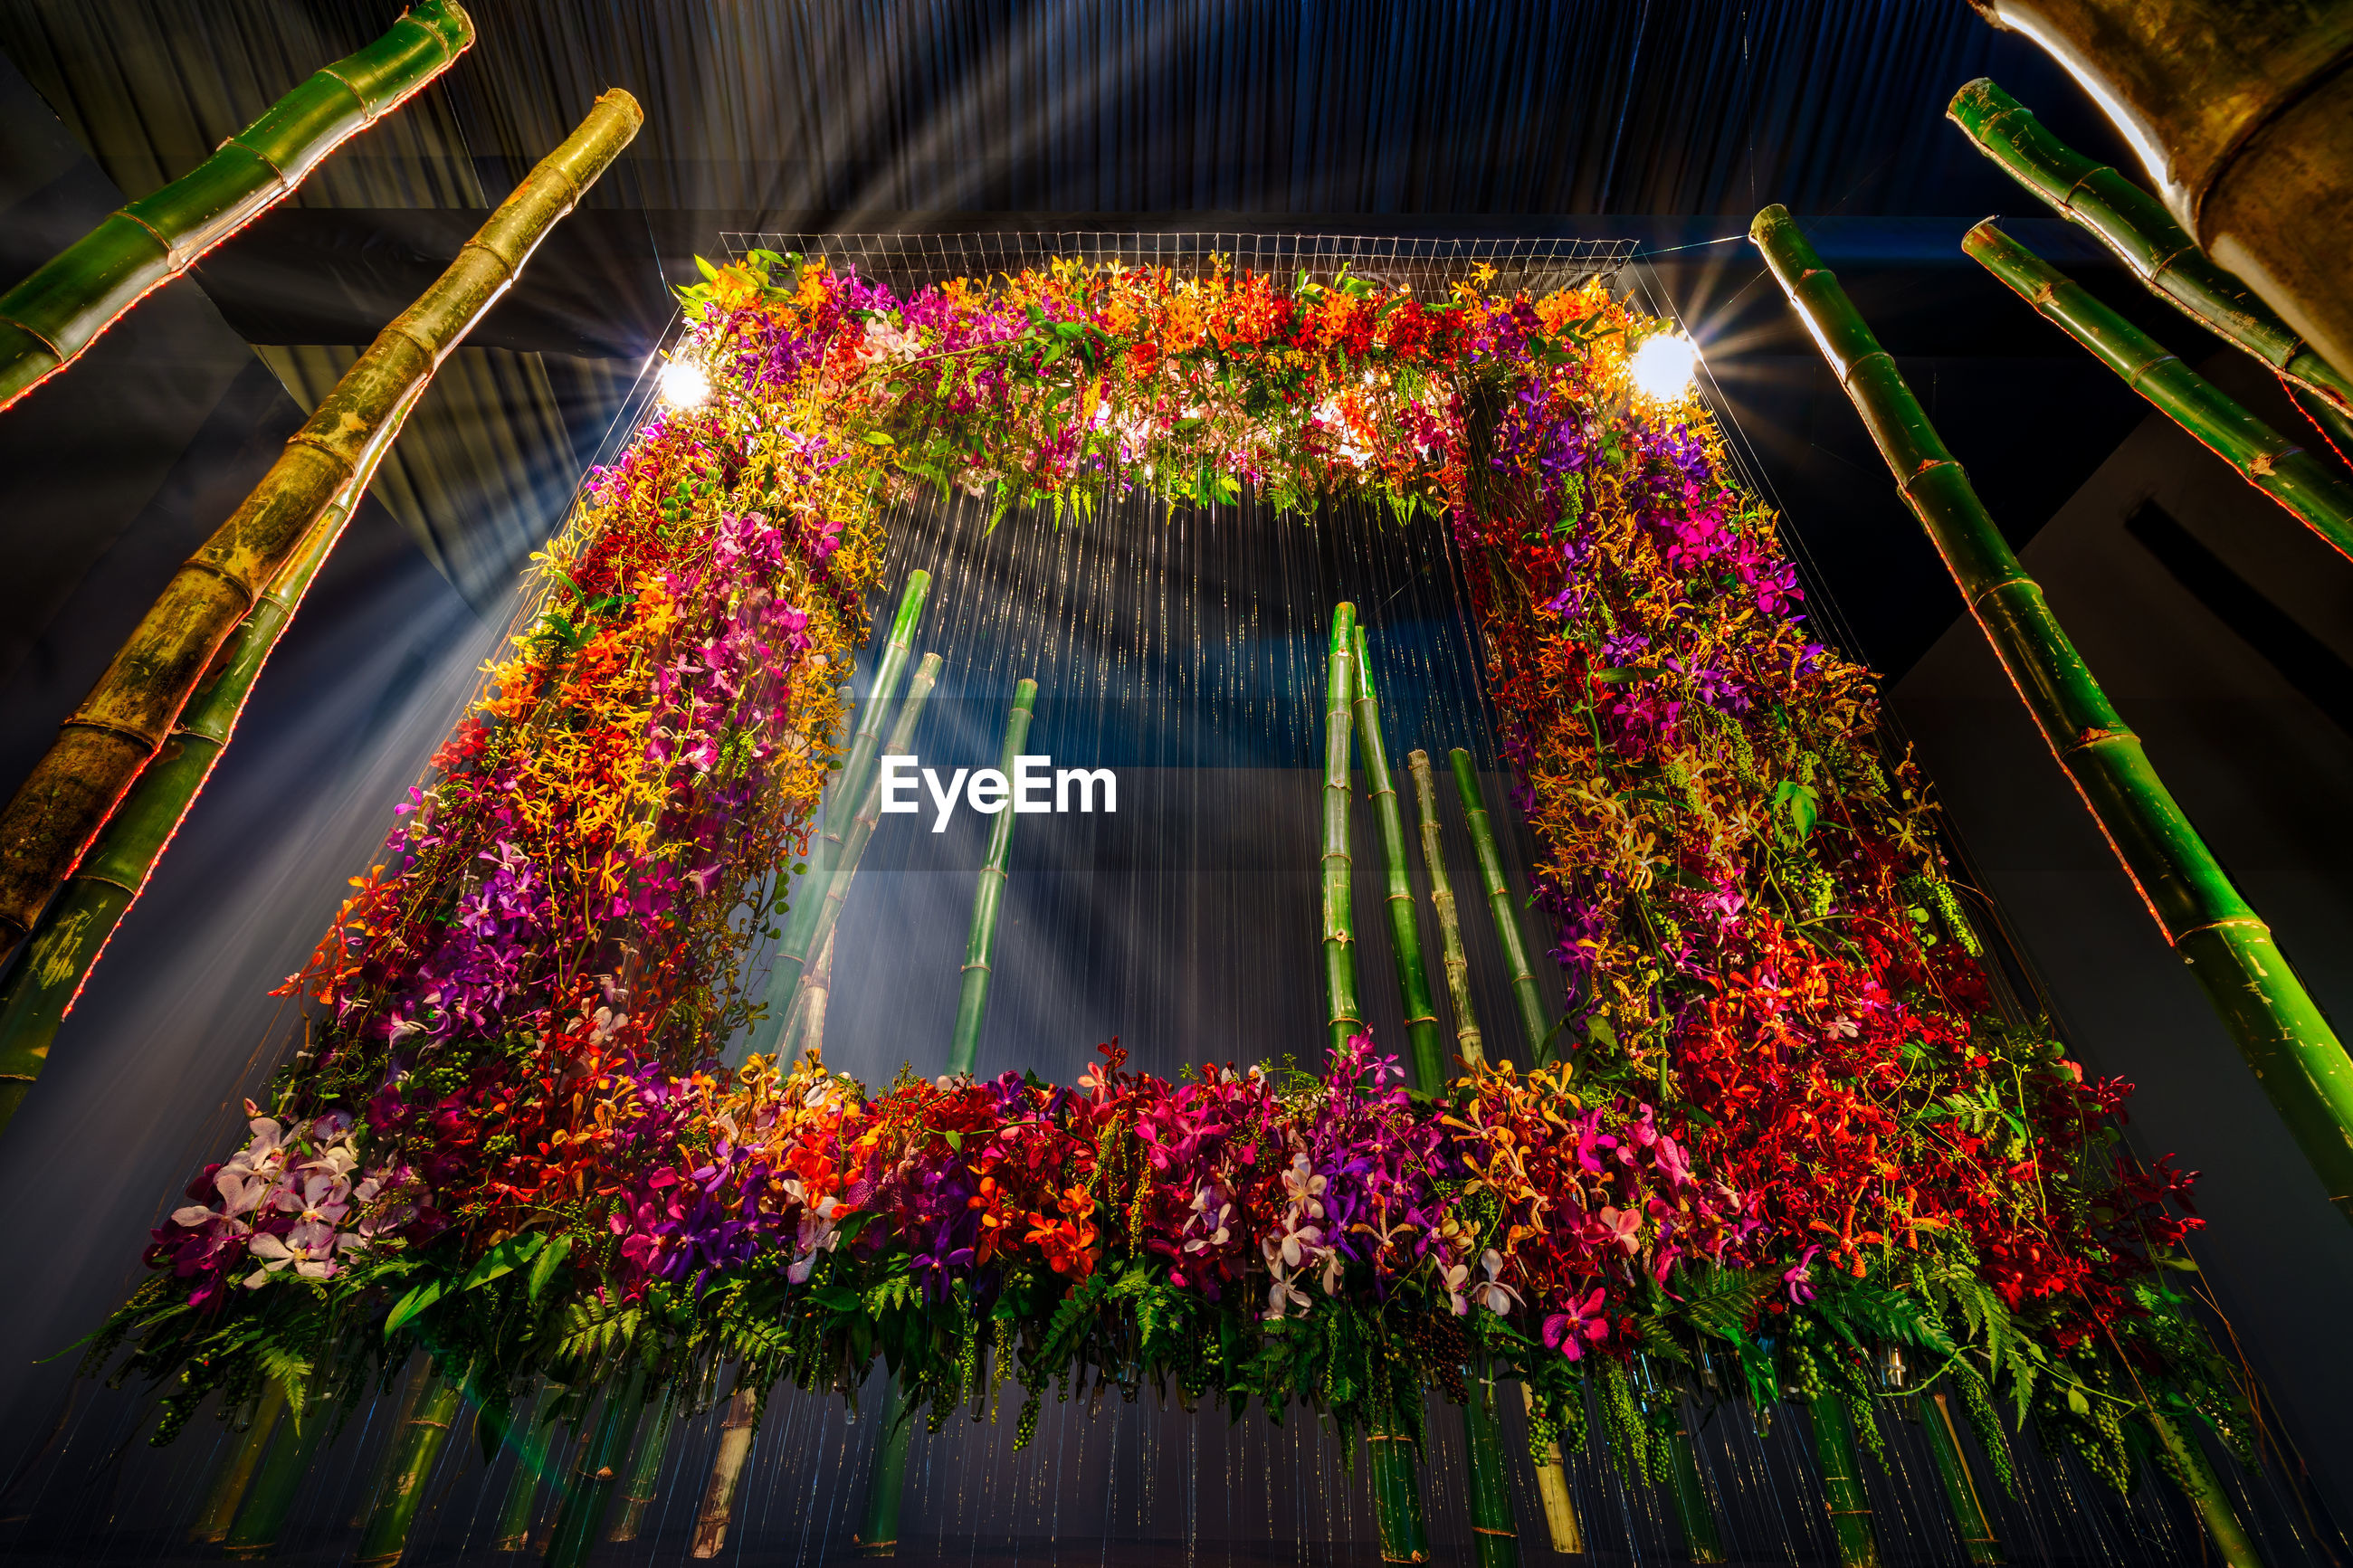 LOW ANGLE VIEW OF FLOWERING PLANTS ON ILLUMINATED STREET